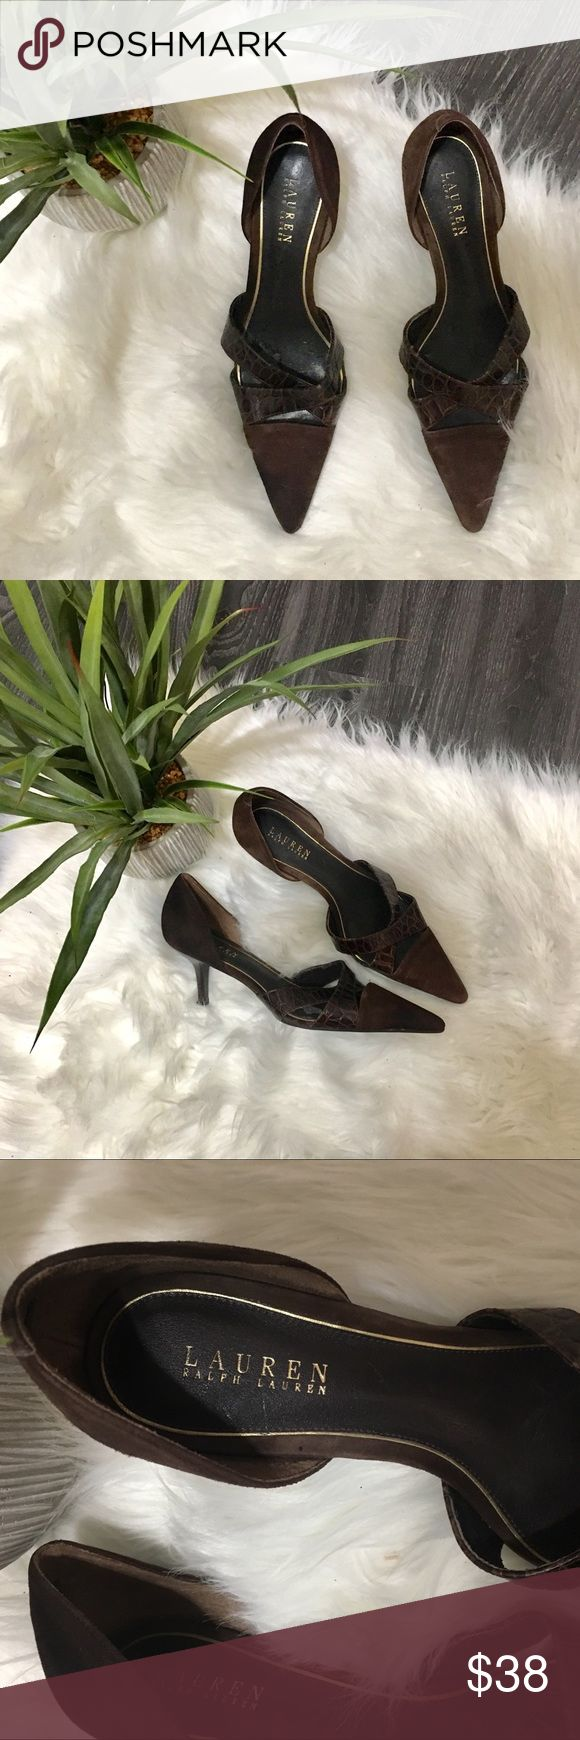 """Ralph Lauren suede snake skin """"Anita shoe"""""""" Ralph Lauren """"Anita"""" brown suede/snake skin 3"""" heel pointy shoe. New without box. Has white mark on inside dousing as pic from a label. Size 9. Bundle 1 or more items and I will give you free shipping Lauren Ralph Lauren Shoes Heels"""